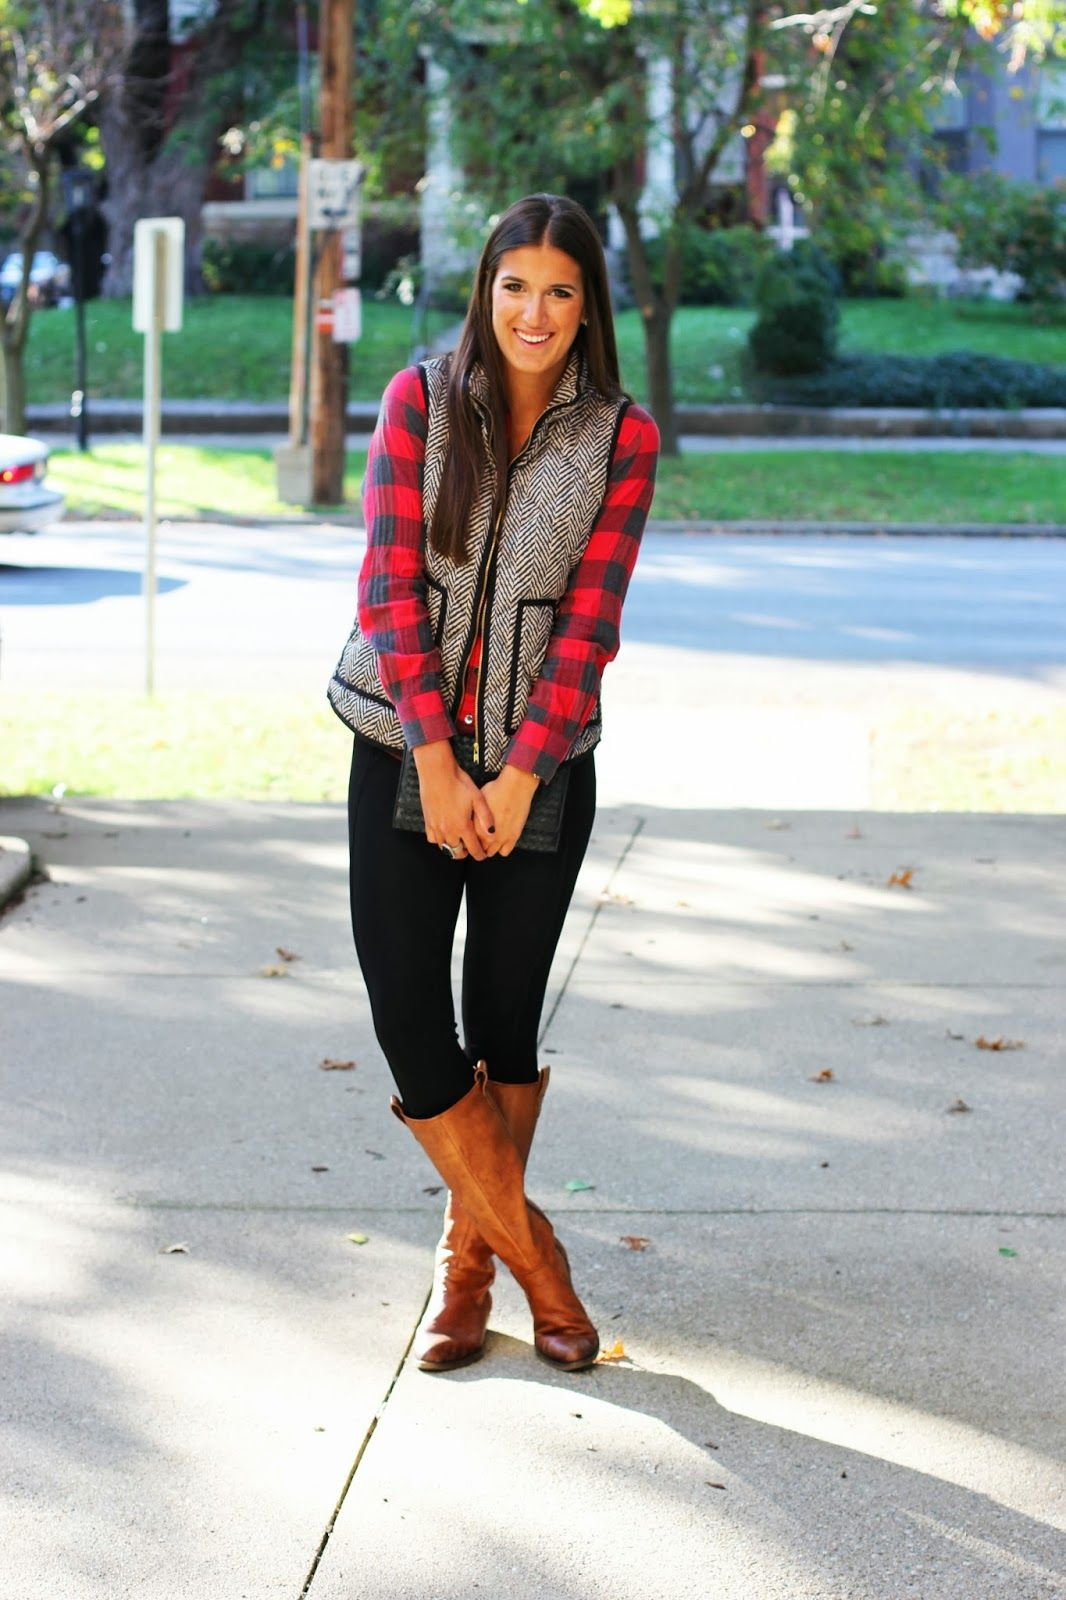 Flannel with jeans and boots  Glow in the Dark  Herringbone Buffalo plaid and Buffalo